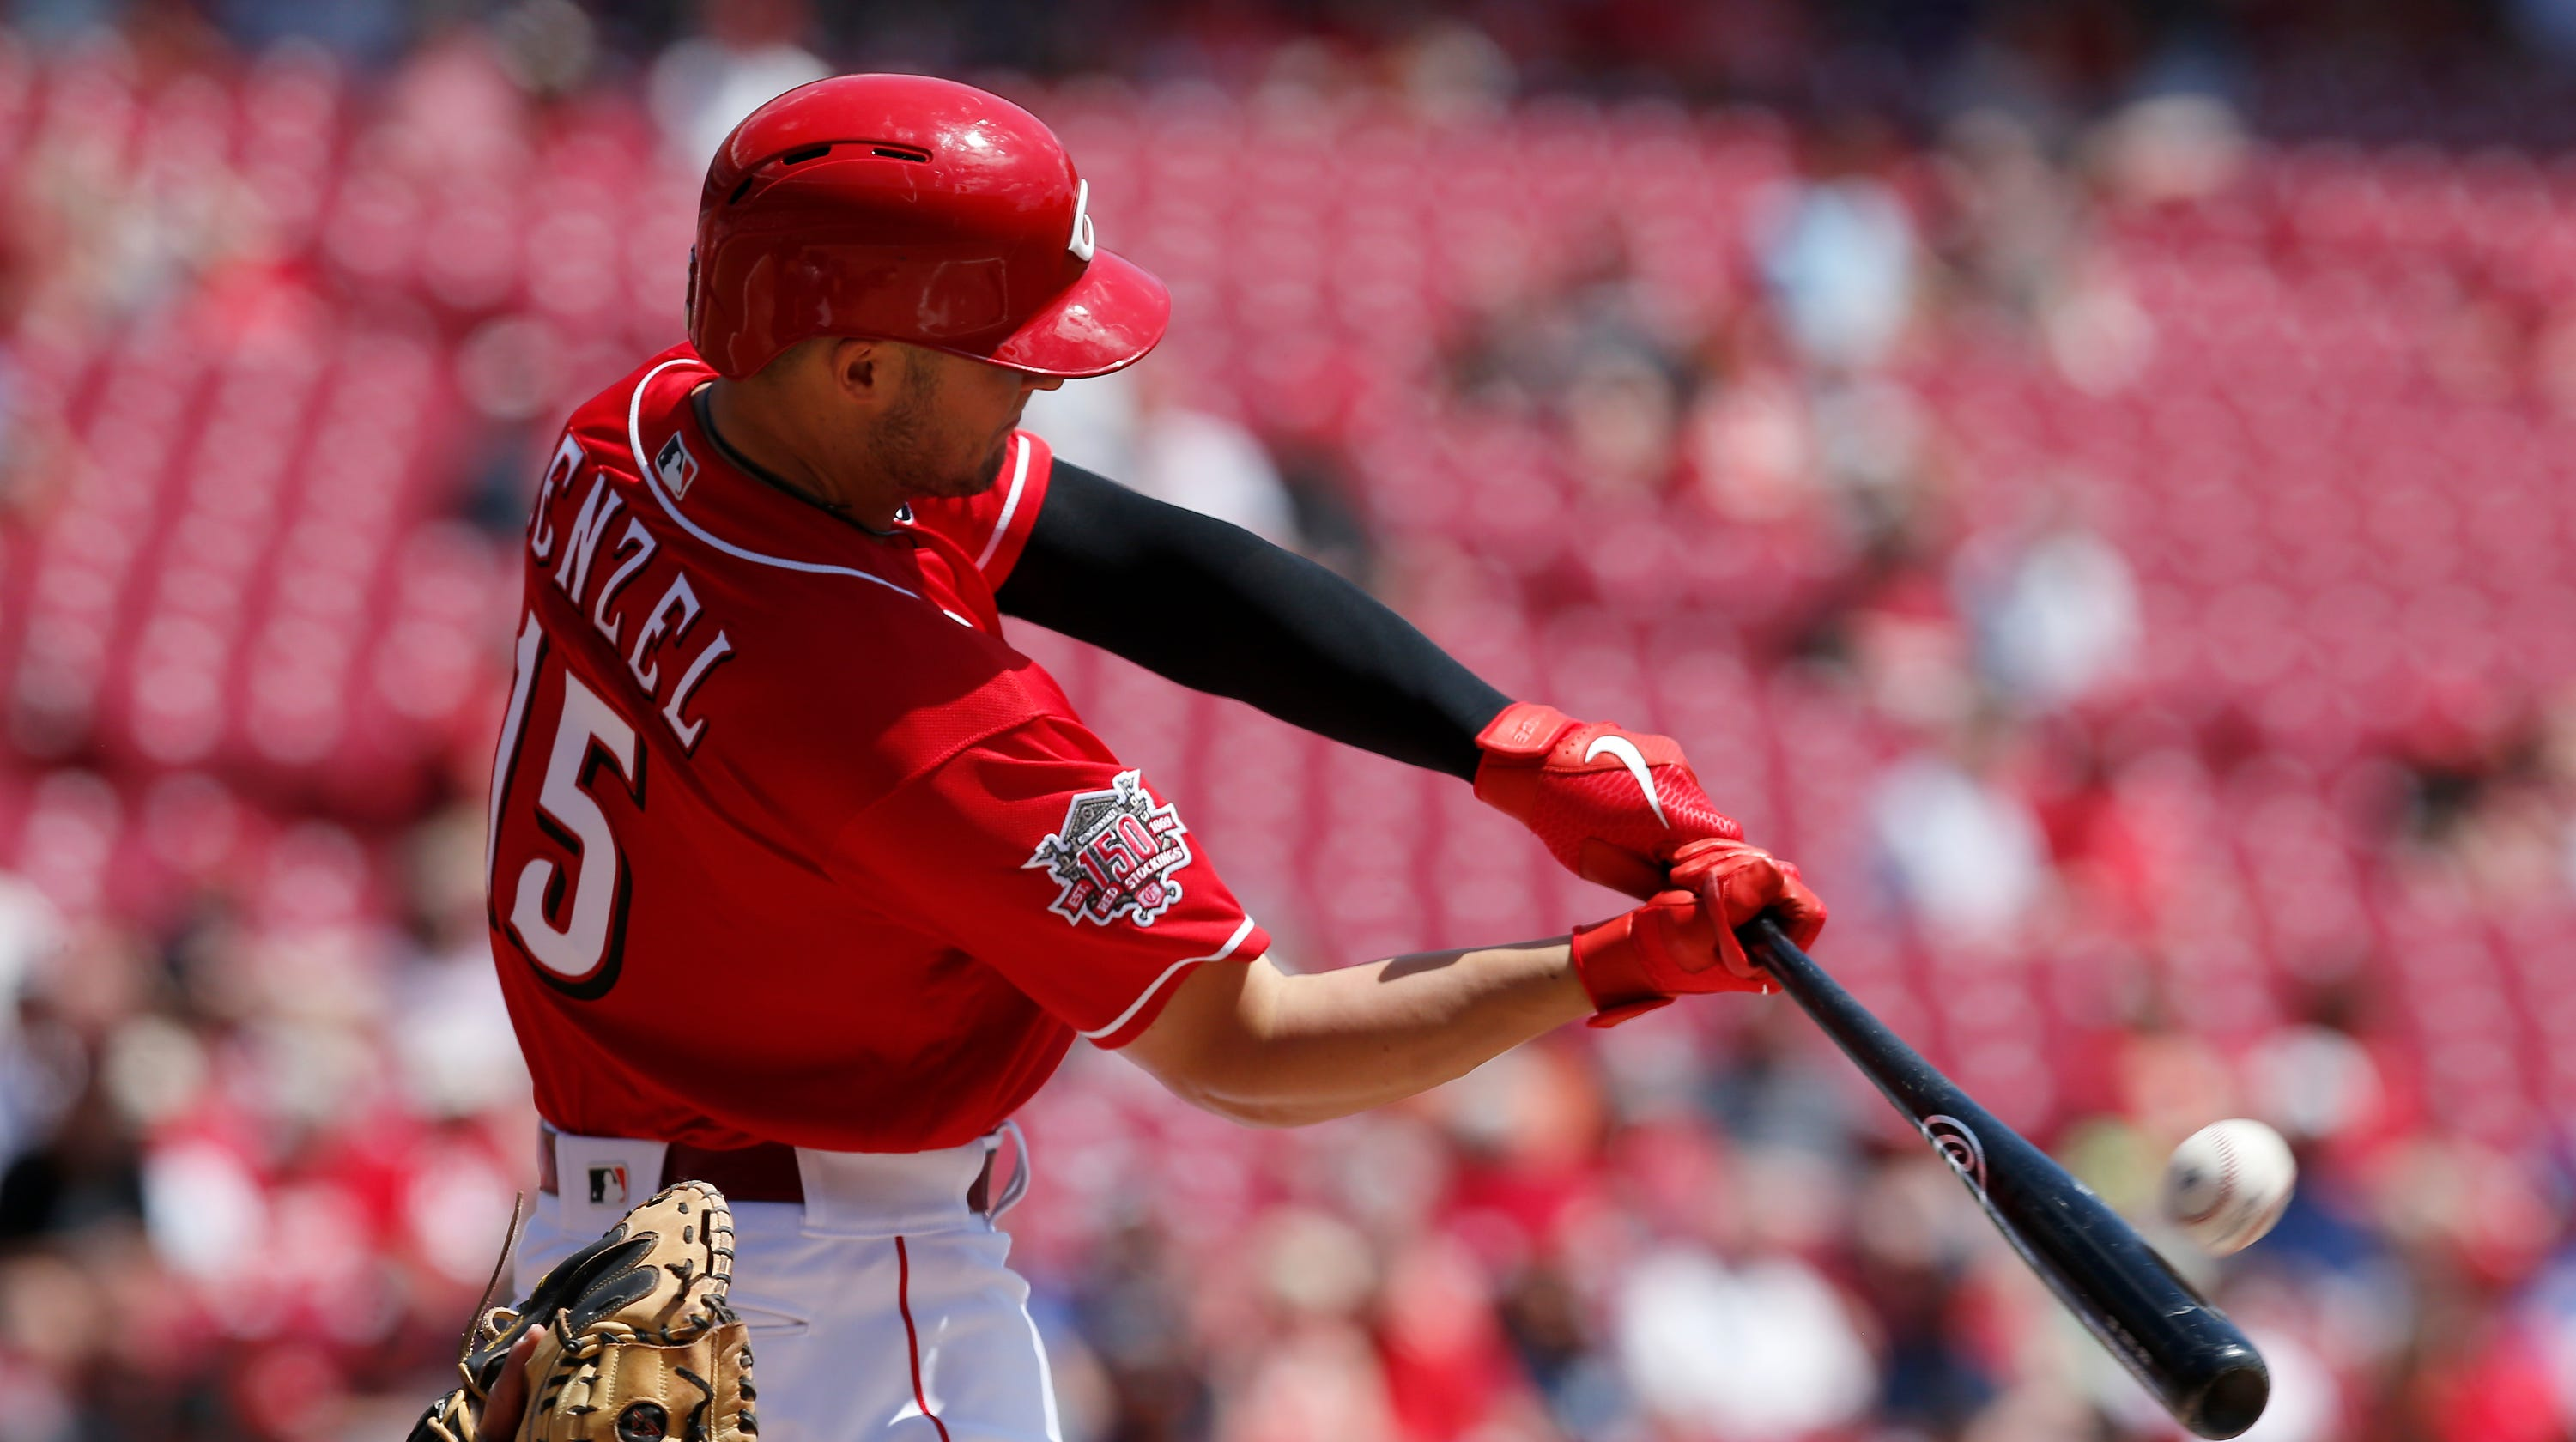 GALLERY: Cincinnati Reds Vs. San Francisco Giants, May 6